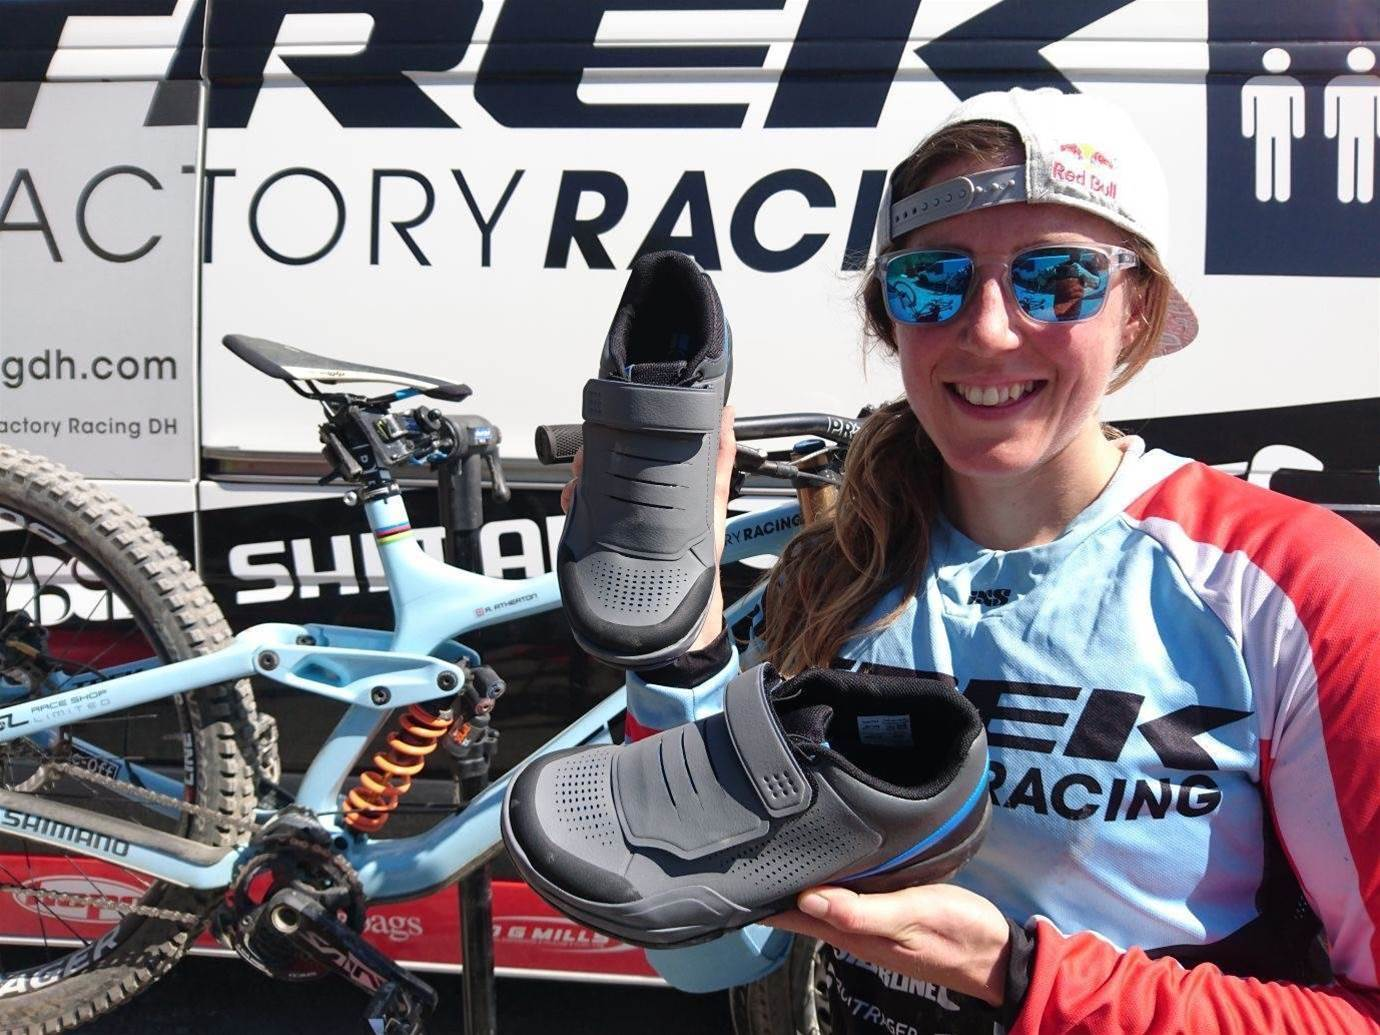 Shimano release new gravity footwear and pedals